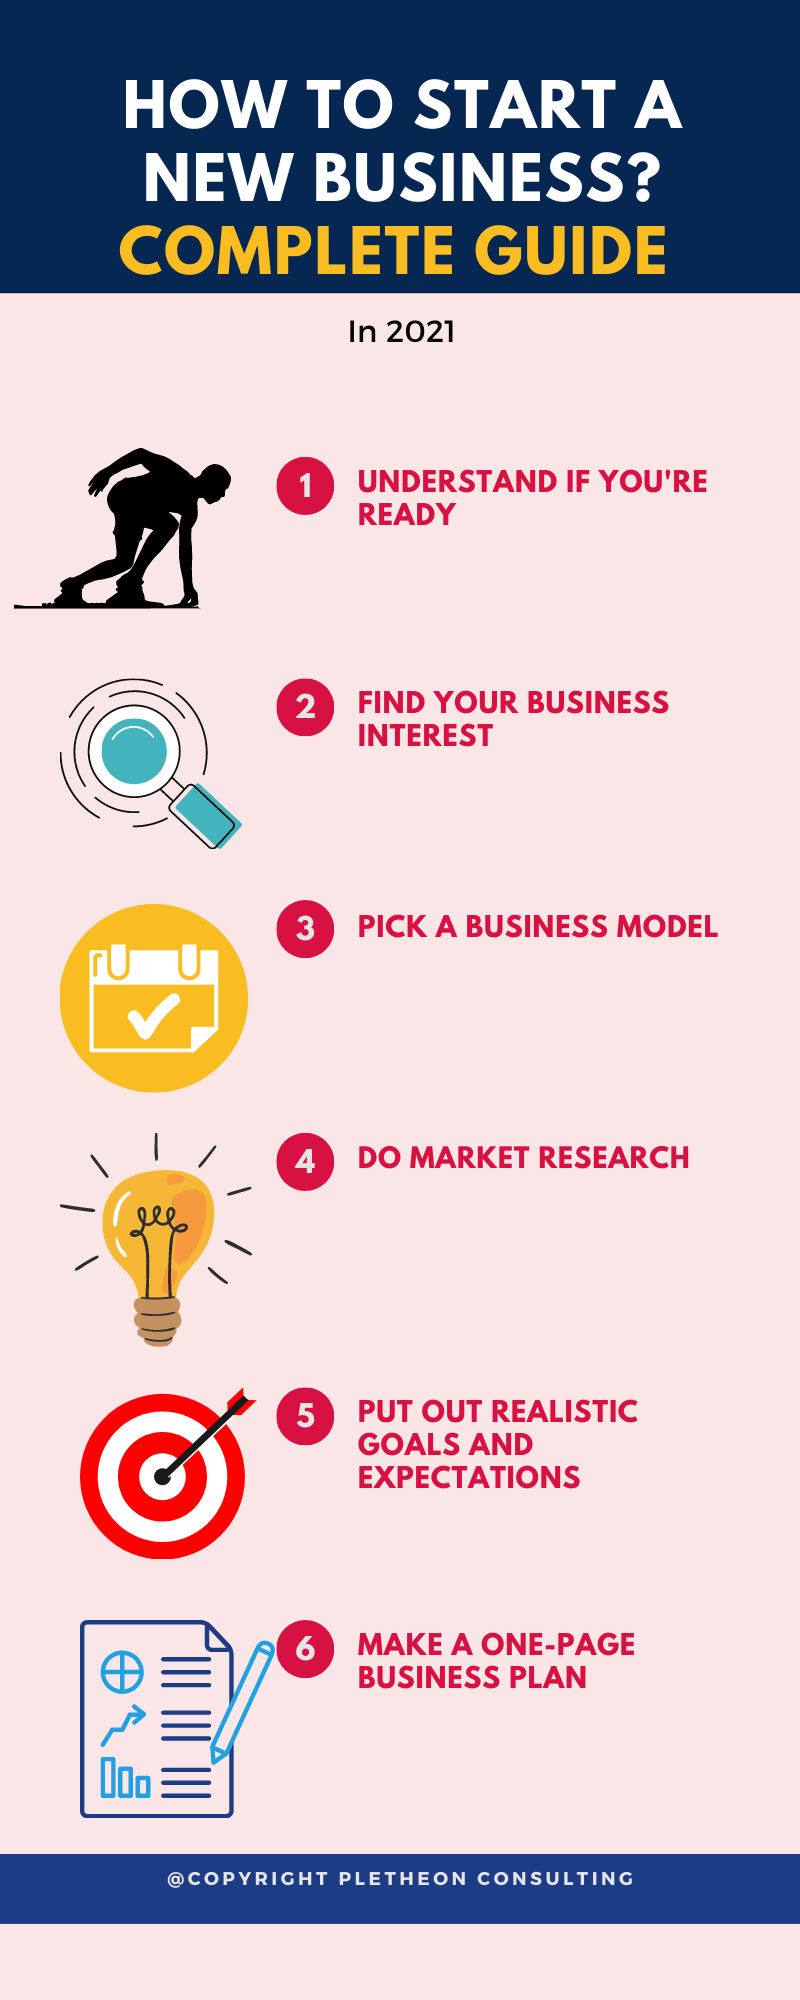 How to start a new business?